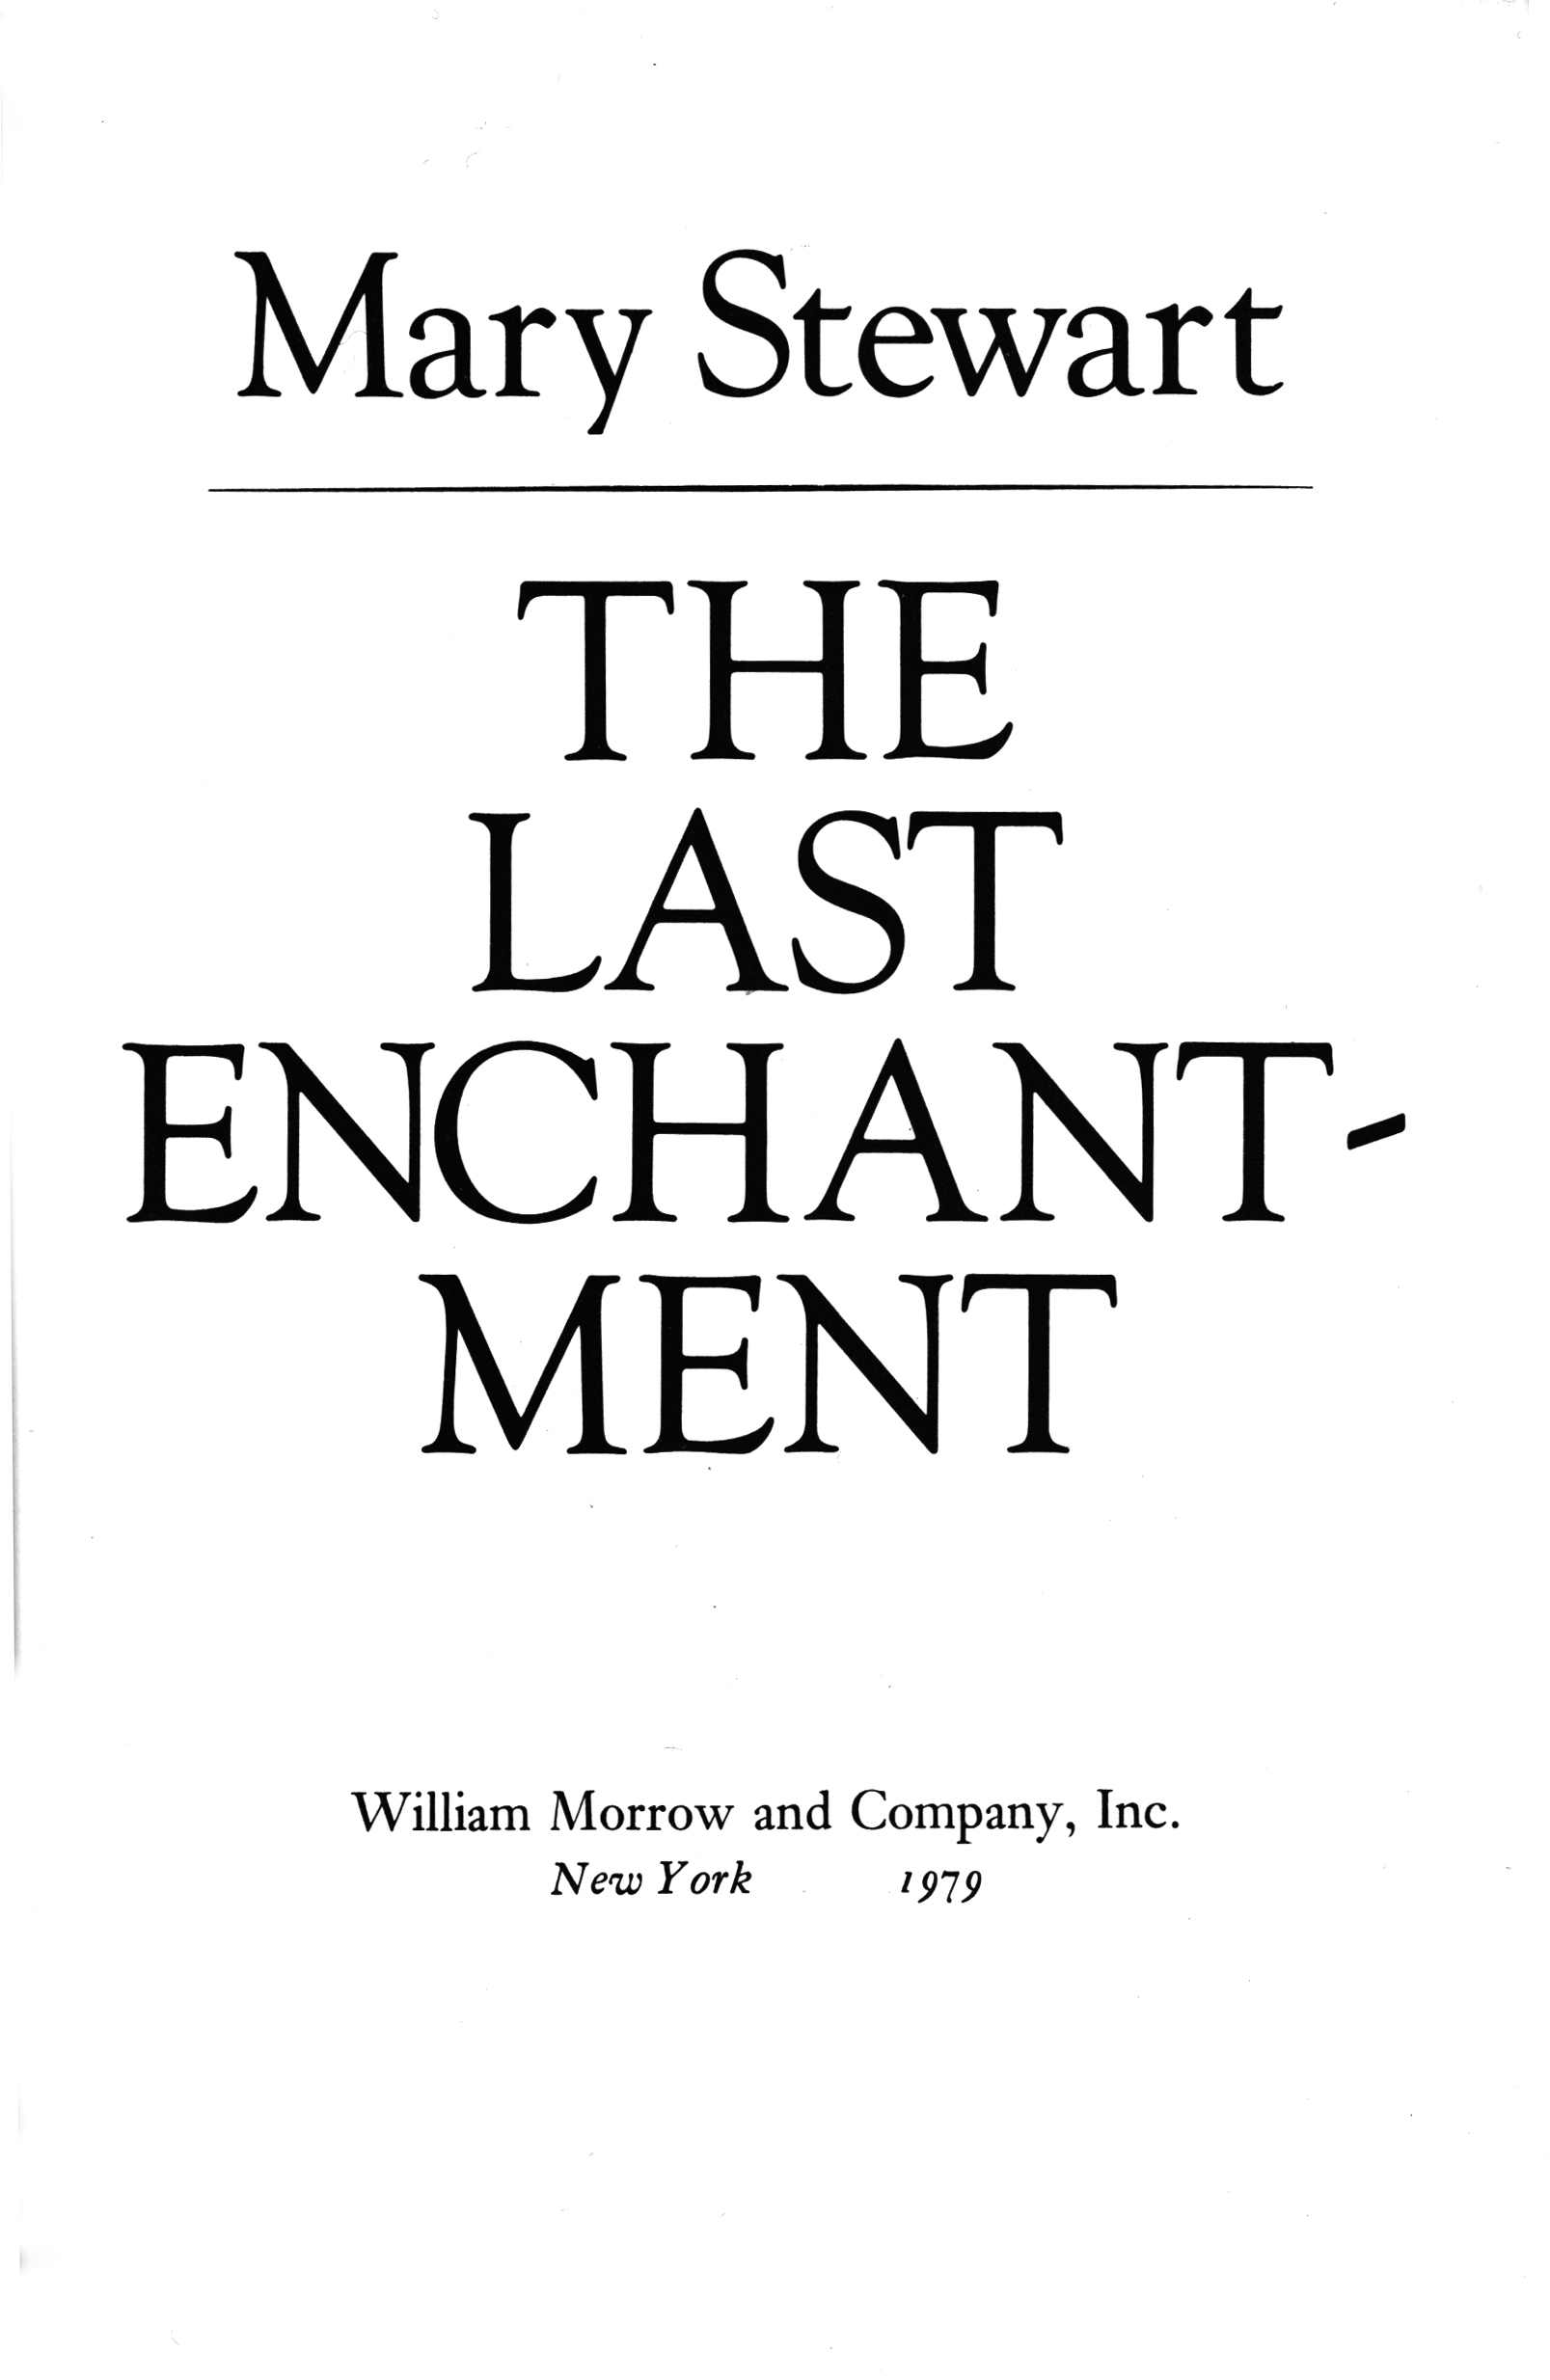 20th century american bestsellers lts 13 jpeg image of title page if available